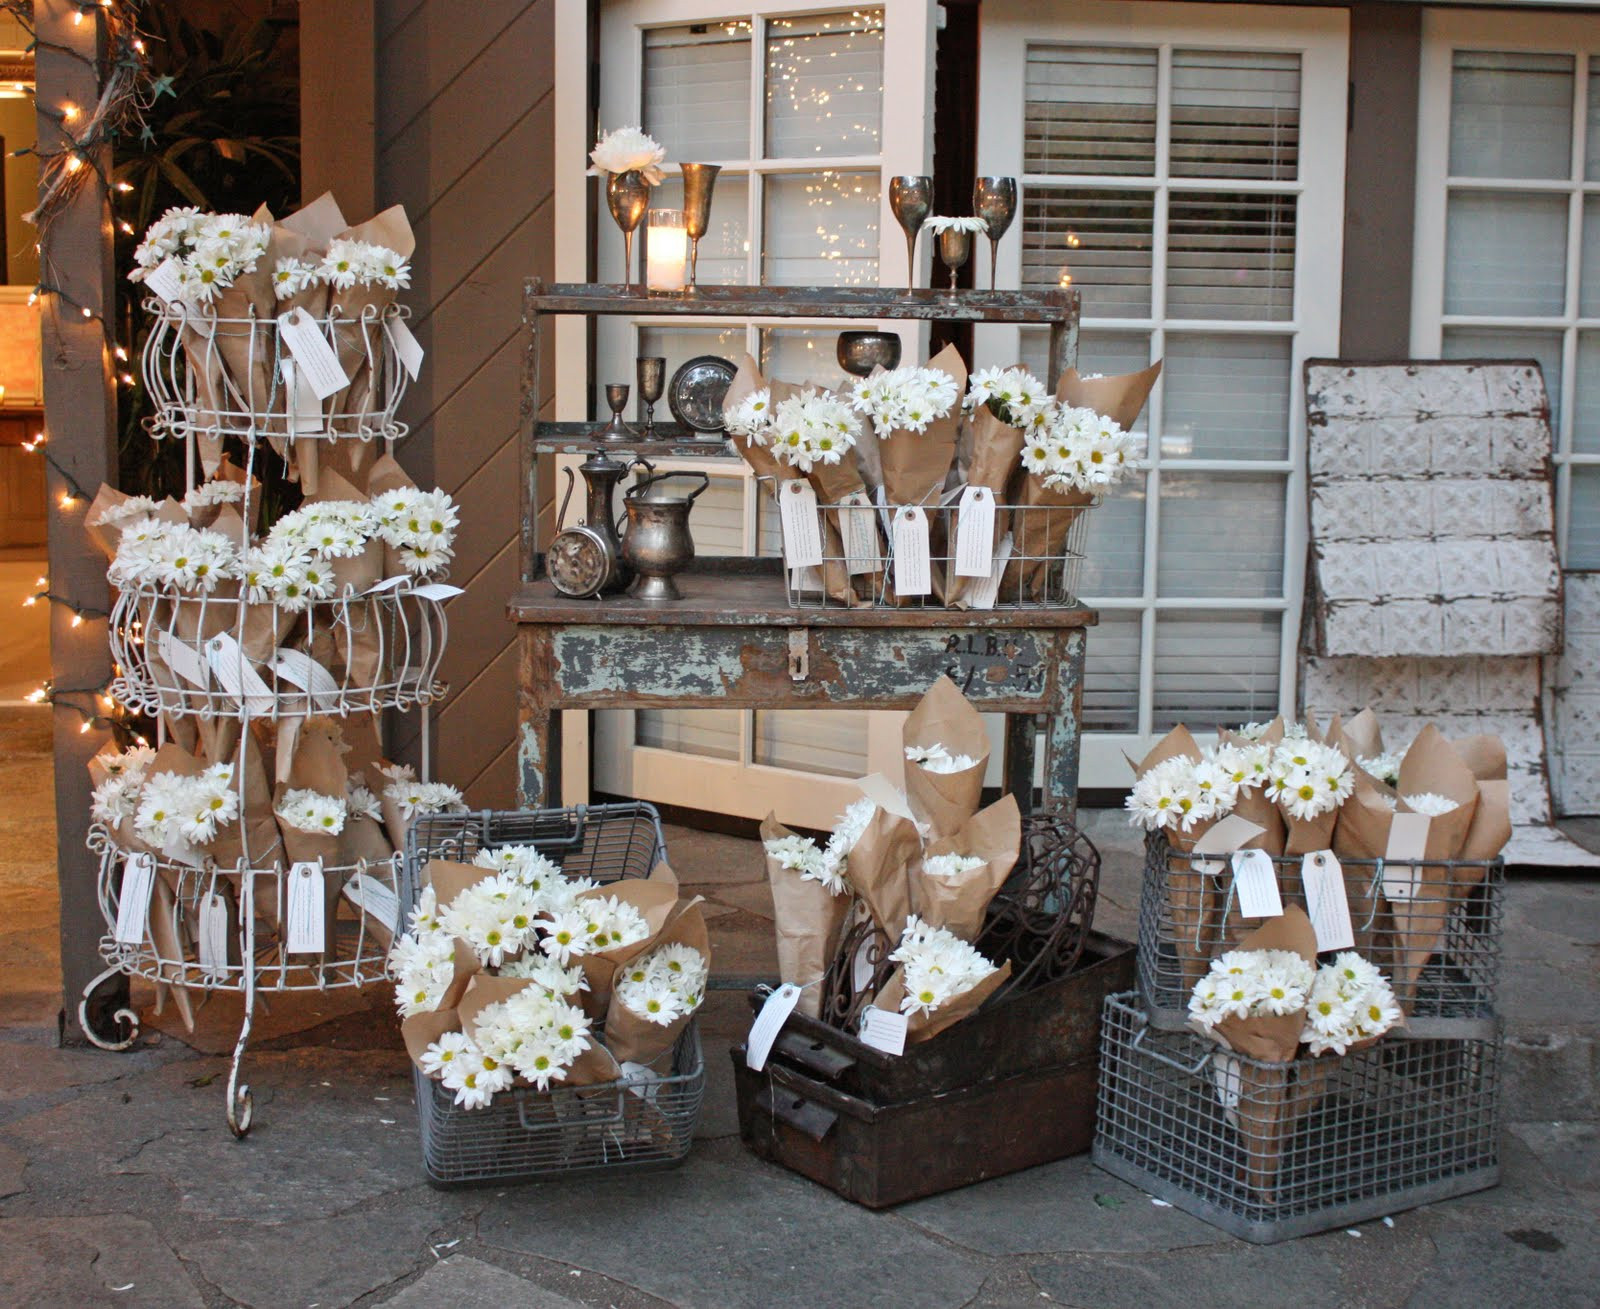 Best ideas about Shabby Chic Wedding . Save or Pin sTORIbook Weddings Tori and Dean s Shabby Chic Wedding Now.